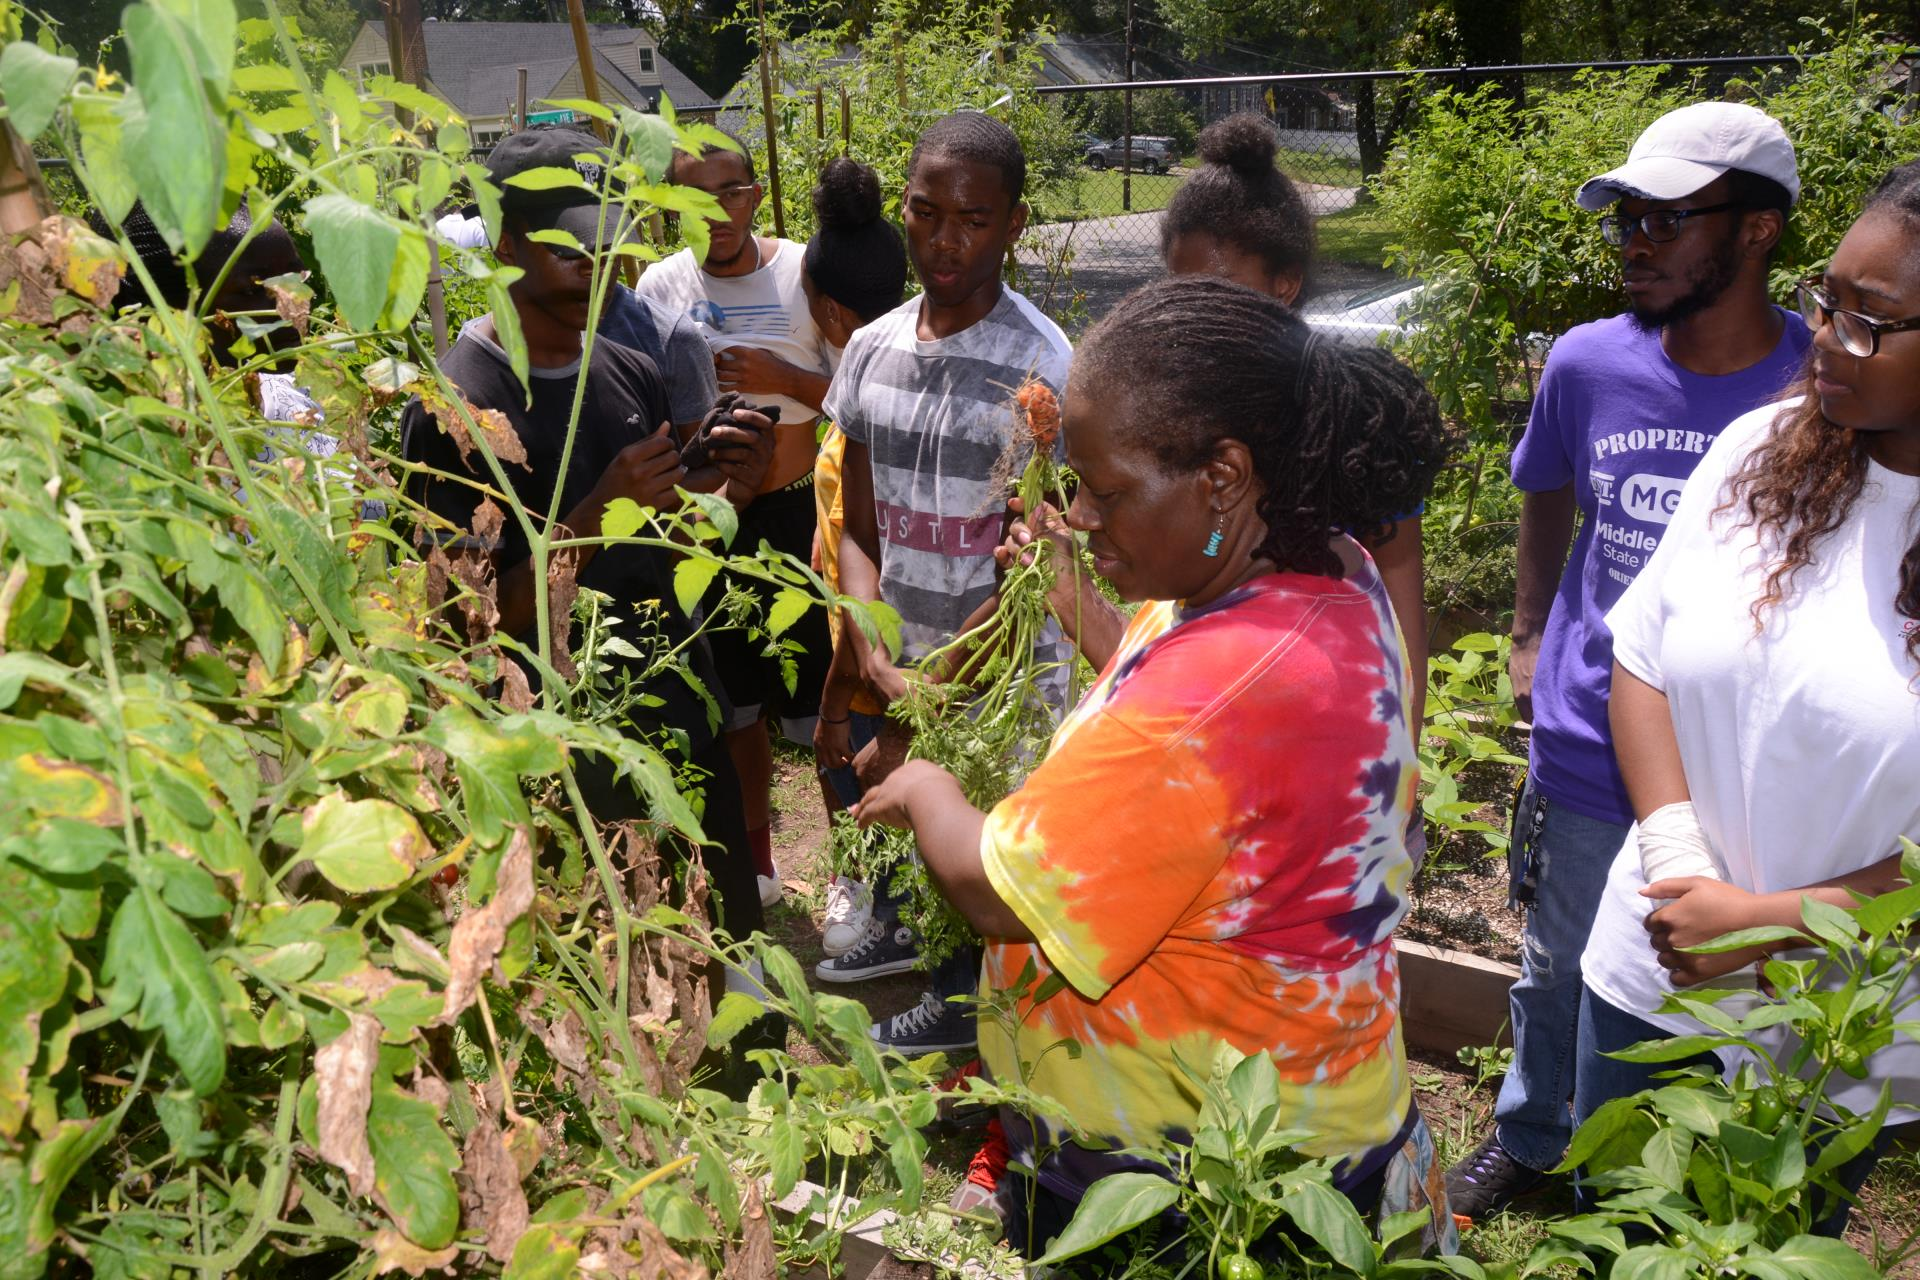 Councilmember Sheperd shares vegetables with youth